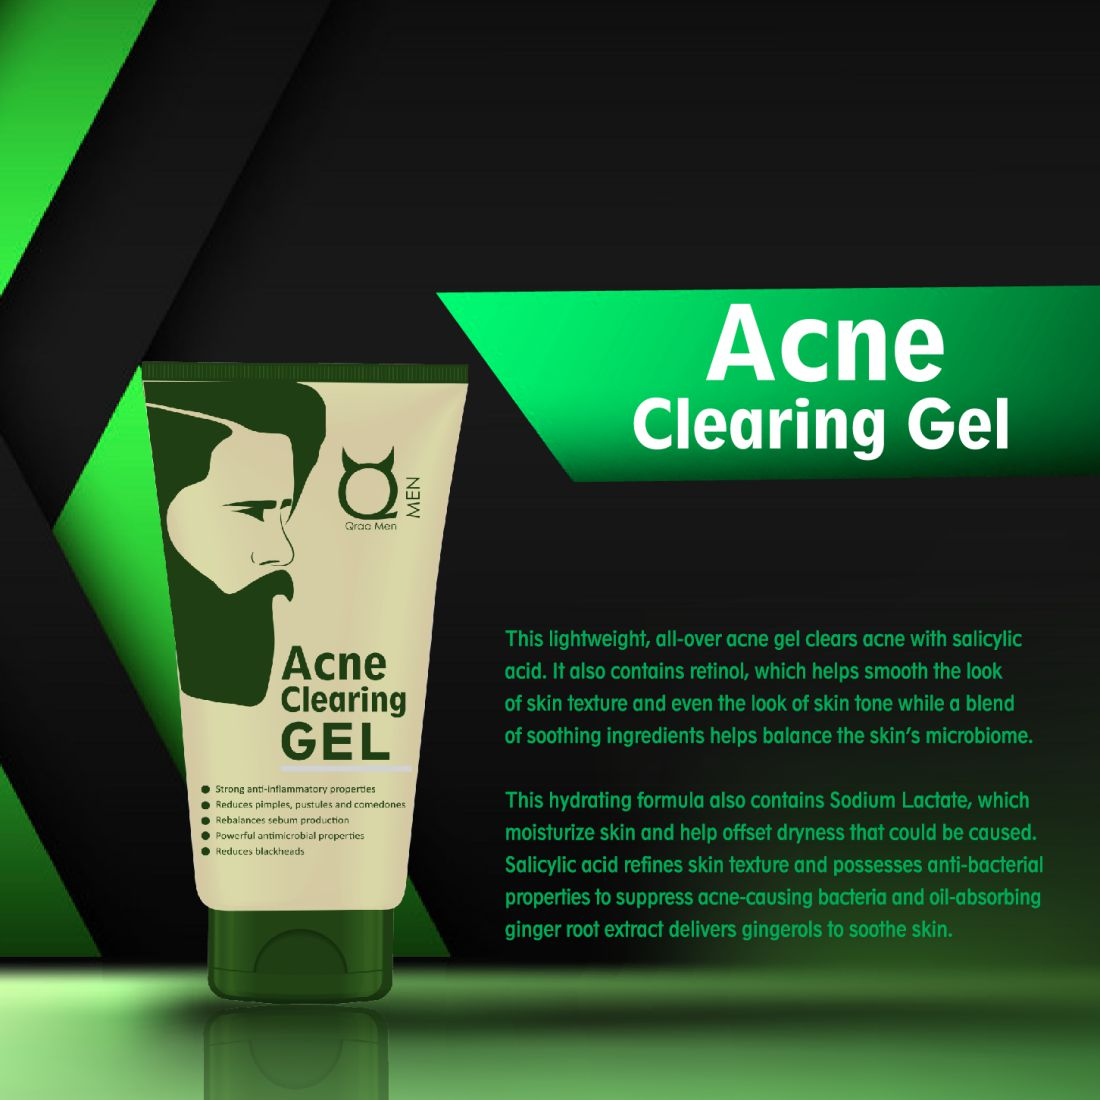 Acne Clearing Face Gel 50g - With Tea Tree Oil